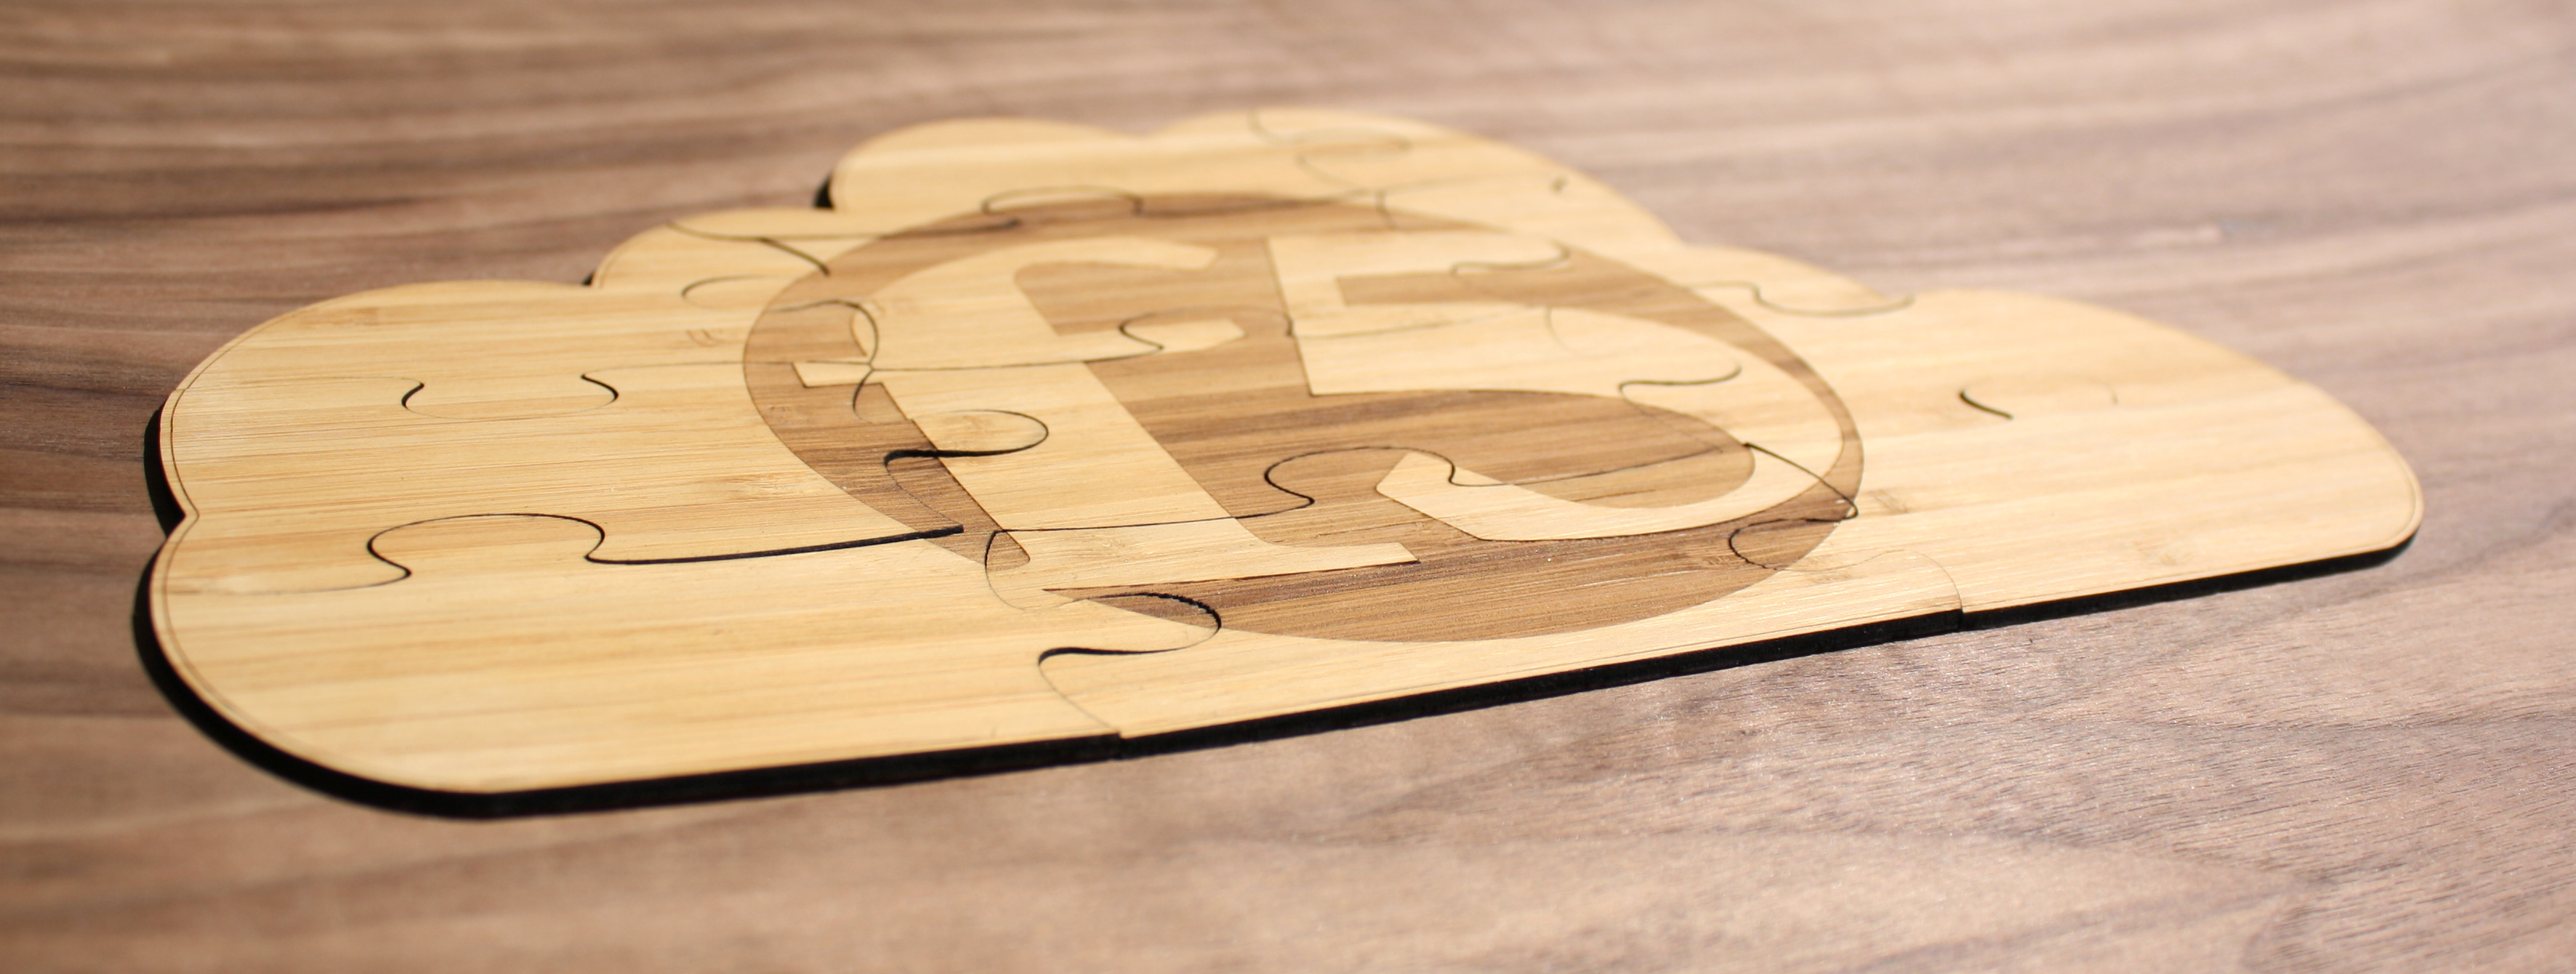 wood engraved logo puzzle in solid bamboo ply